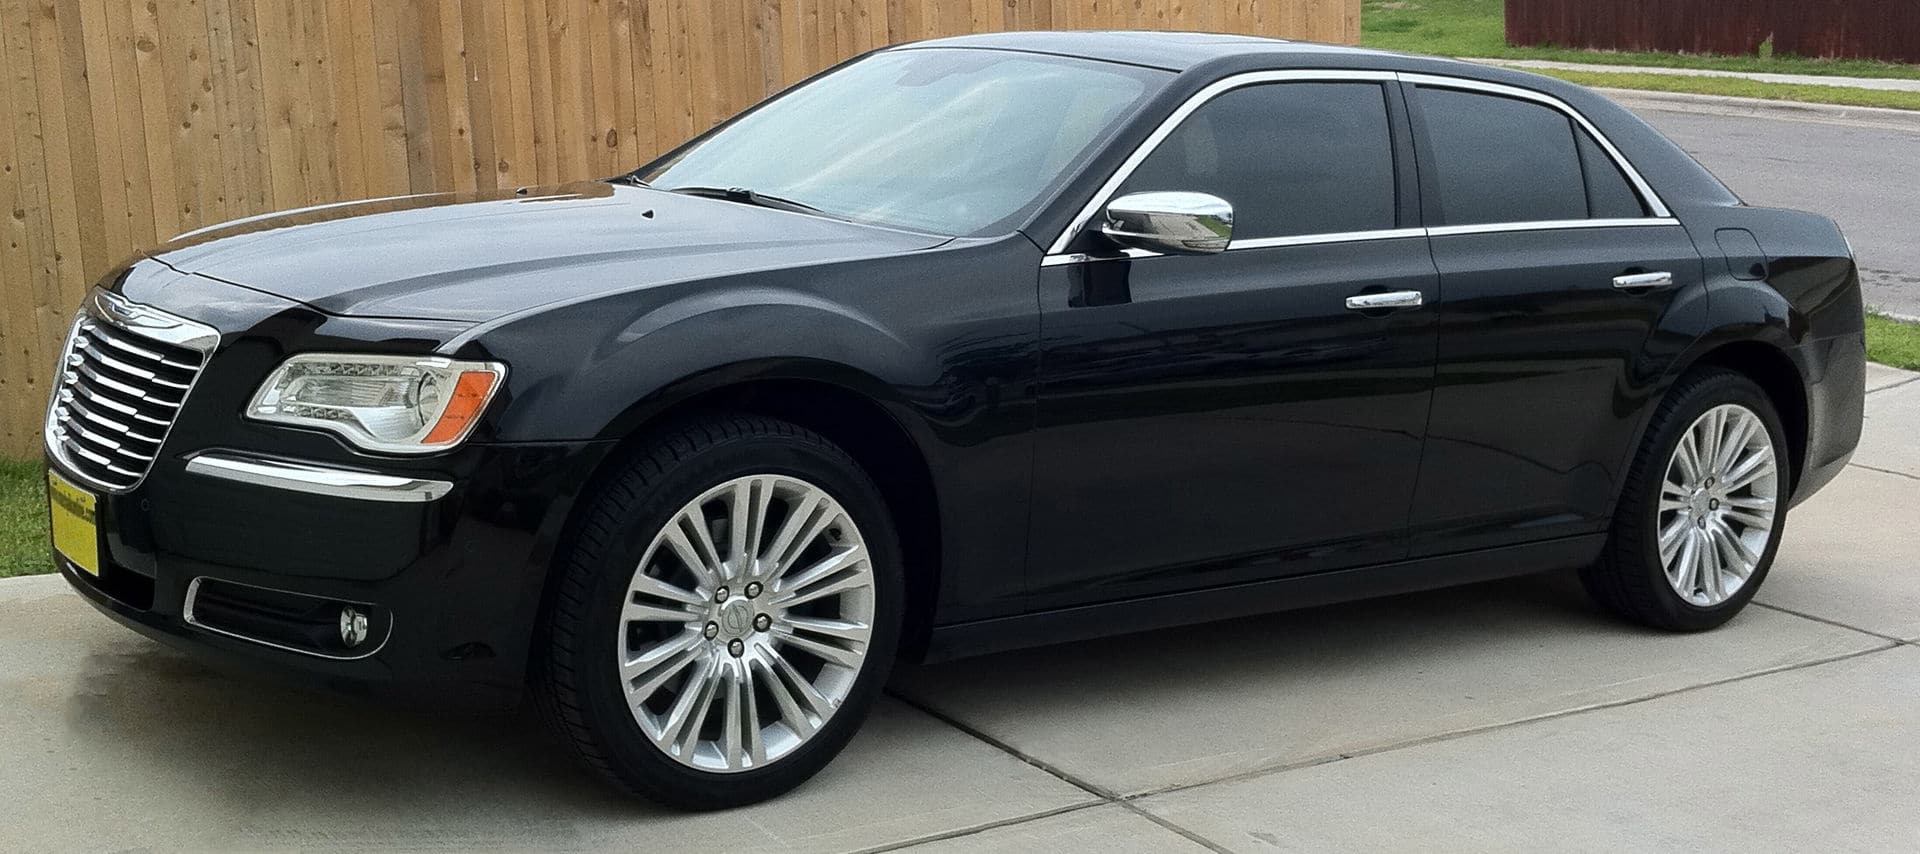 carbycar how honest a is john chrysler car review much